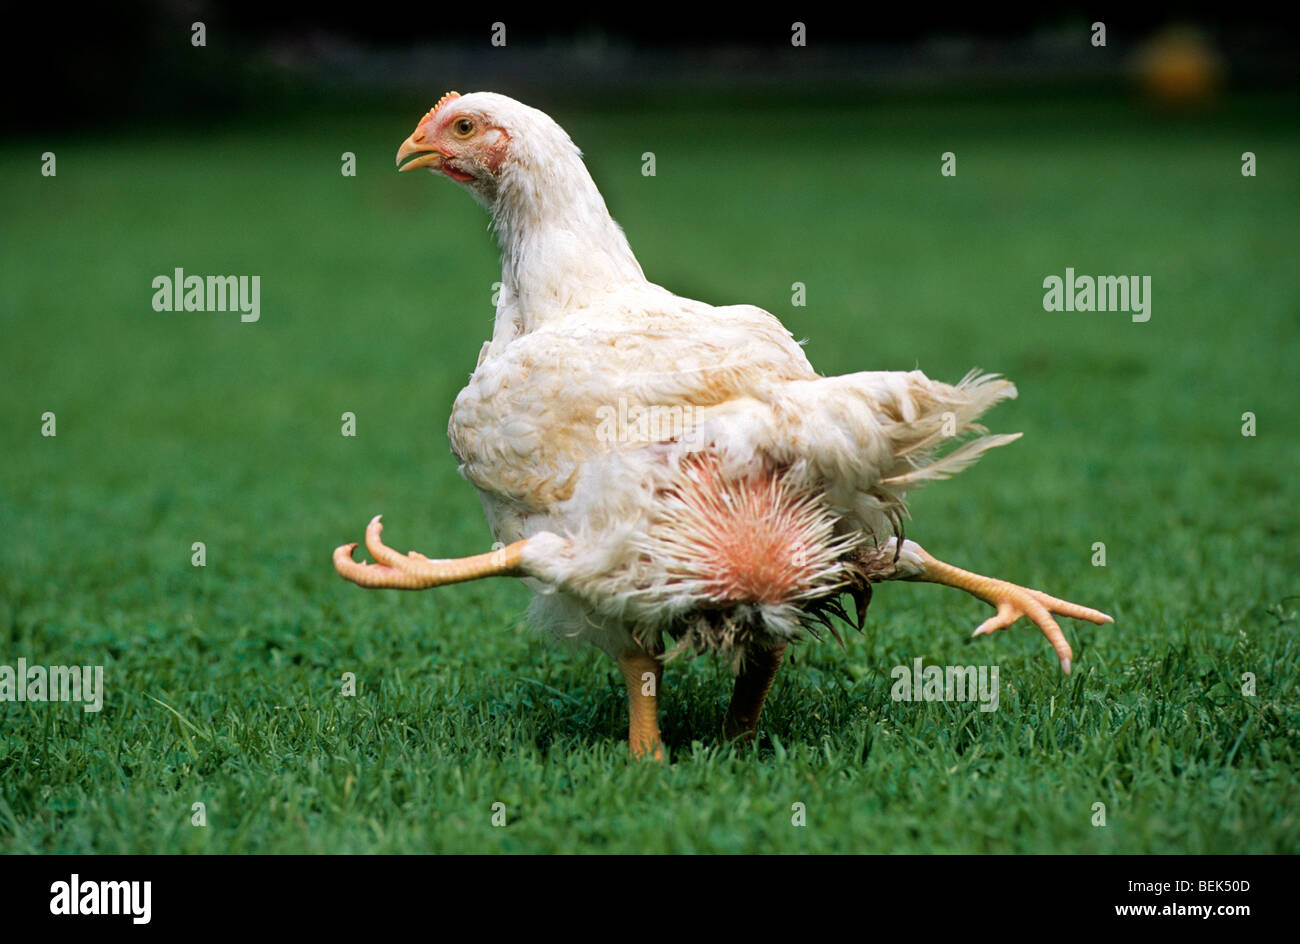 Mutated chicken with four legs, a congenital physical ...